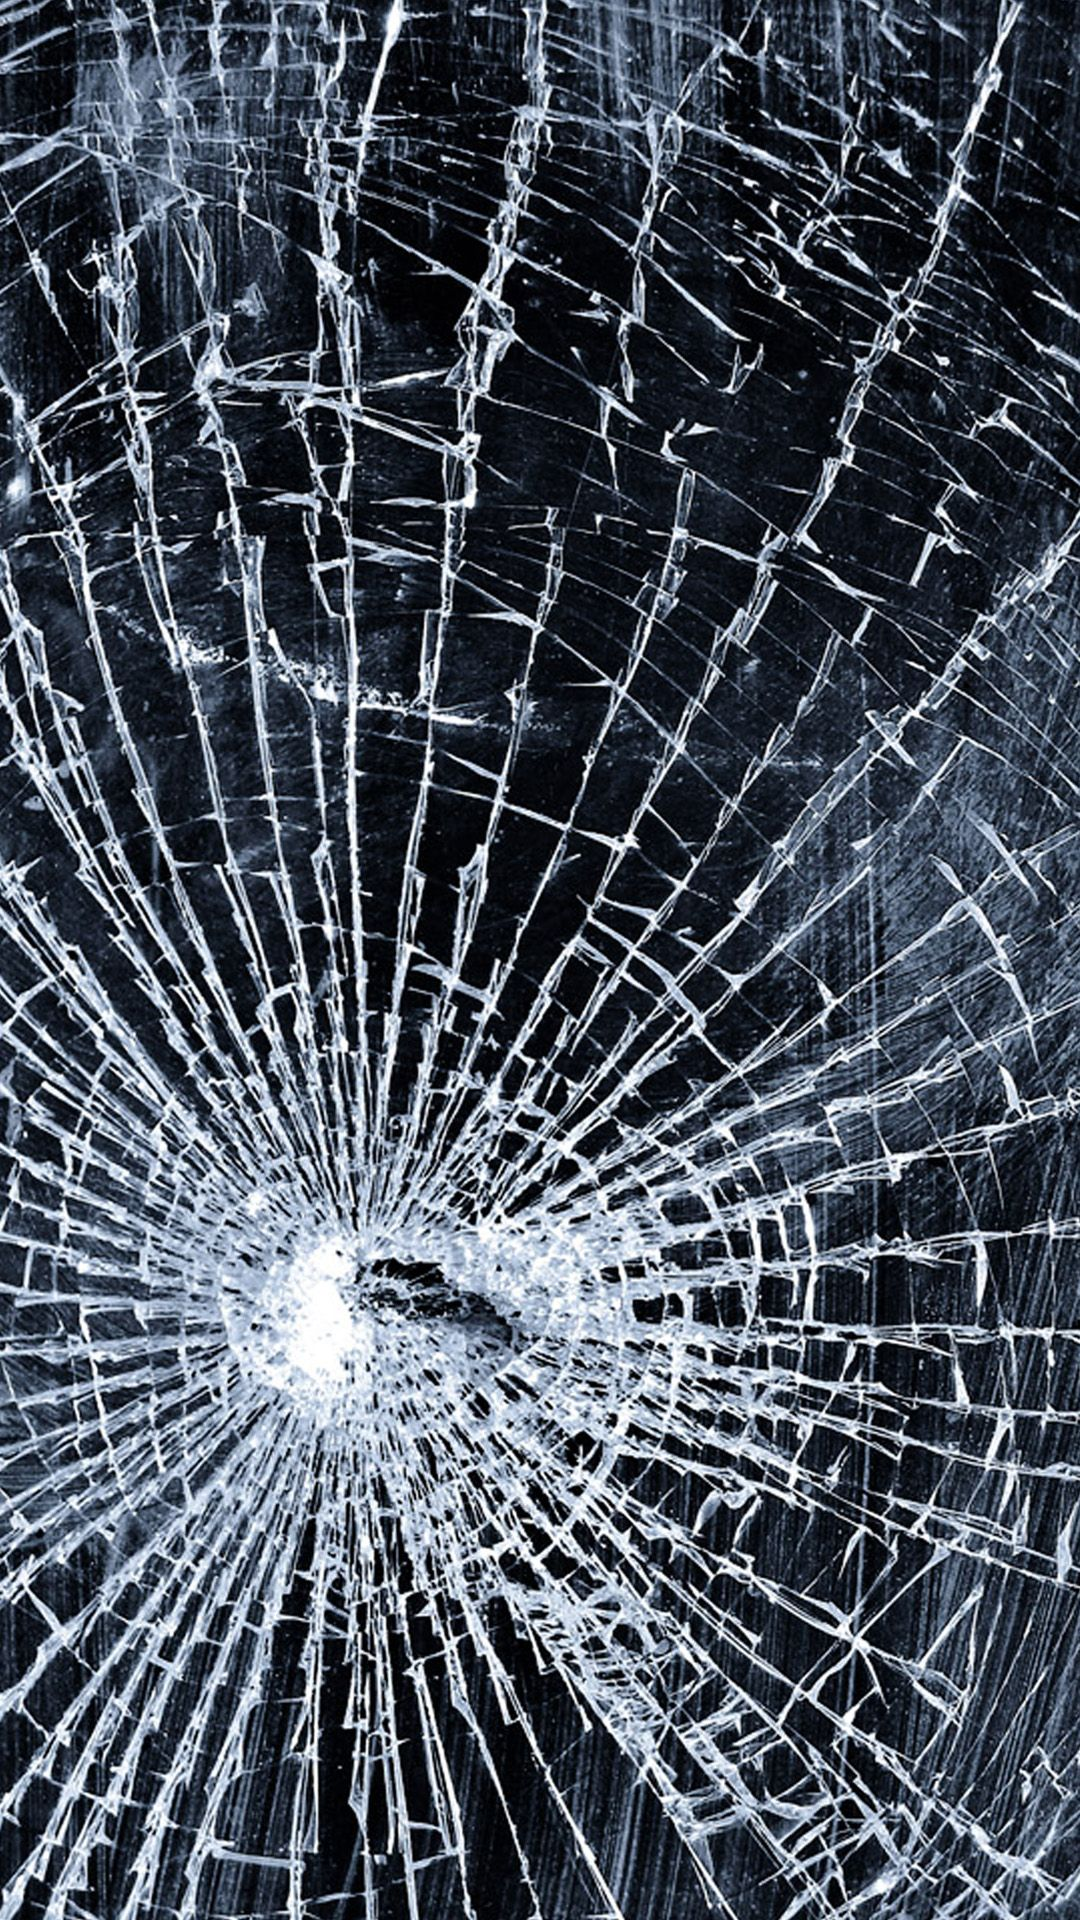 Cracked Screen Wallpaper HD | Wallpapers in 2019 | Broken ...